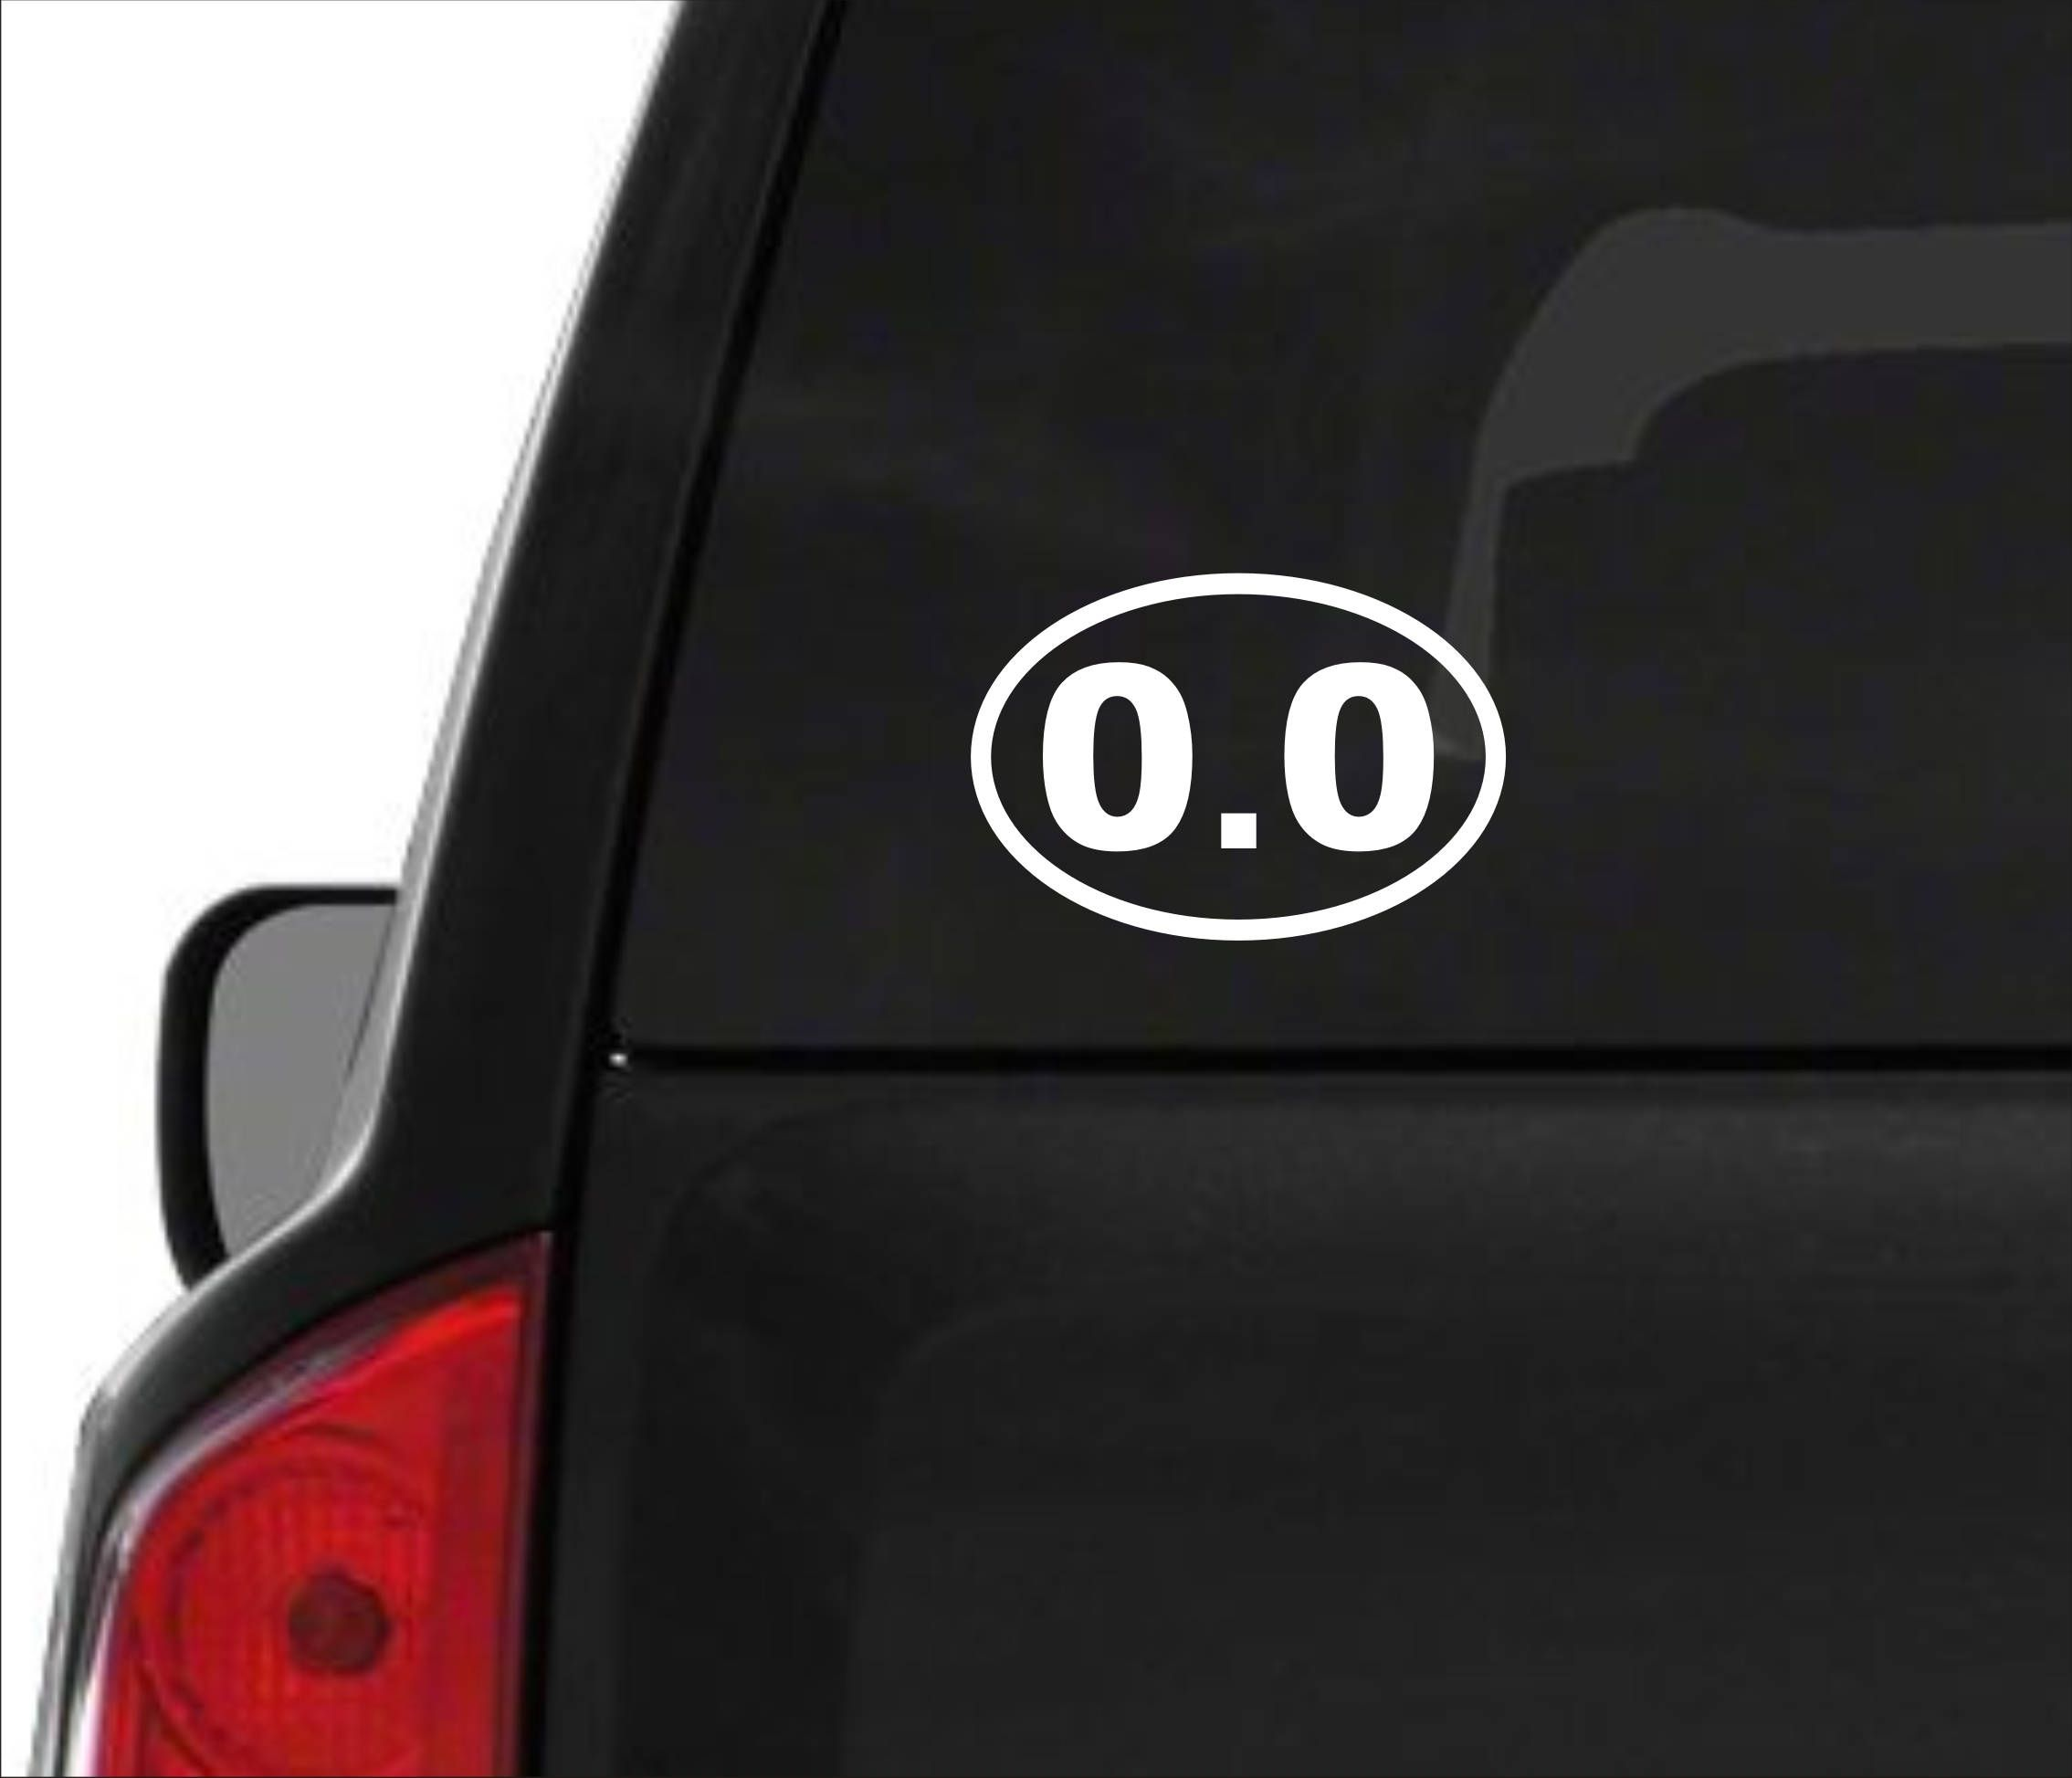 Excited to share this item from my #etsy shop: 0.0 miles decal, mileage decal, runner's decal, 0.0 miles sticker, 0.0 marathon decal, 0.0 sticker, 0.0 miles runner, zero miles decal